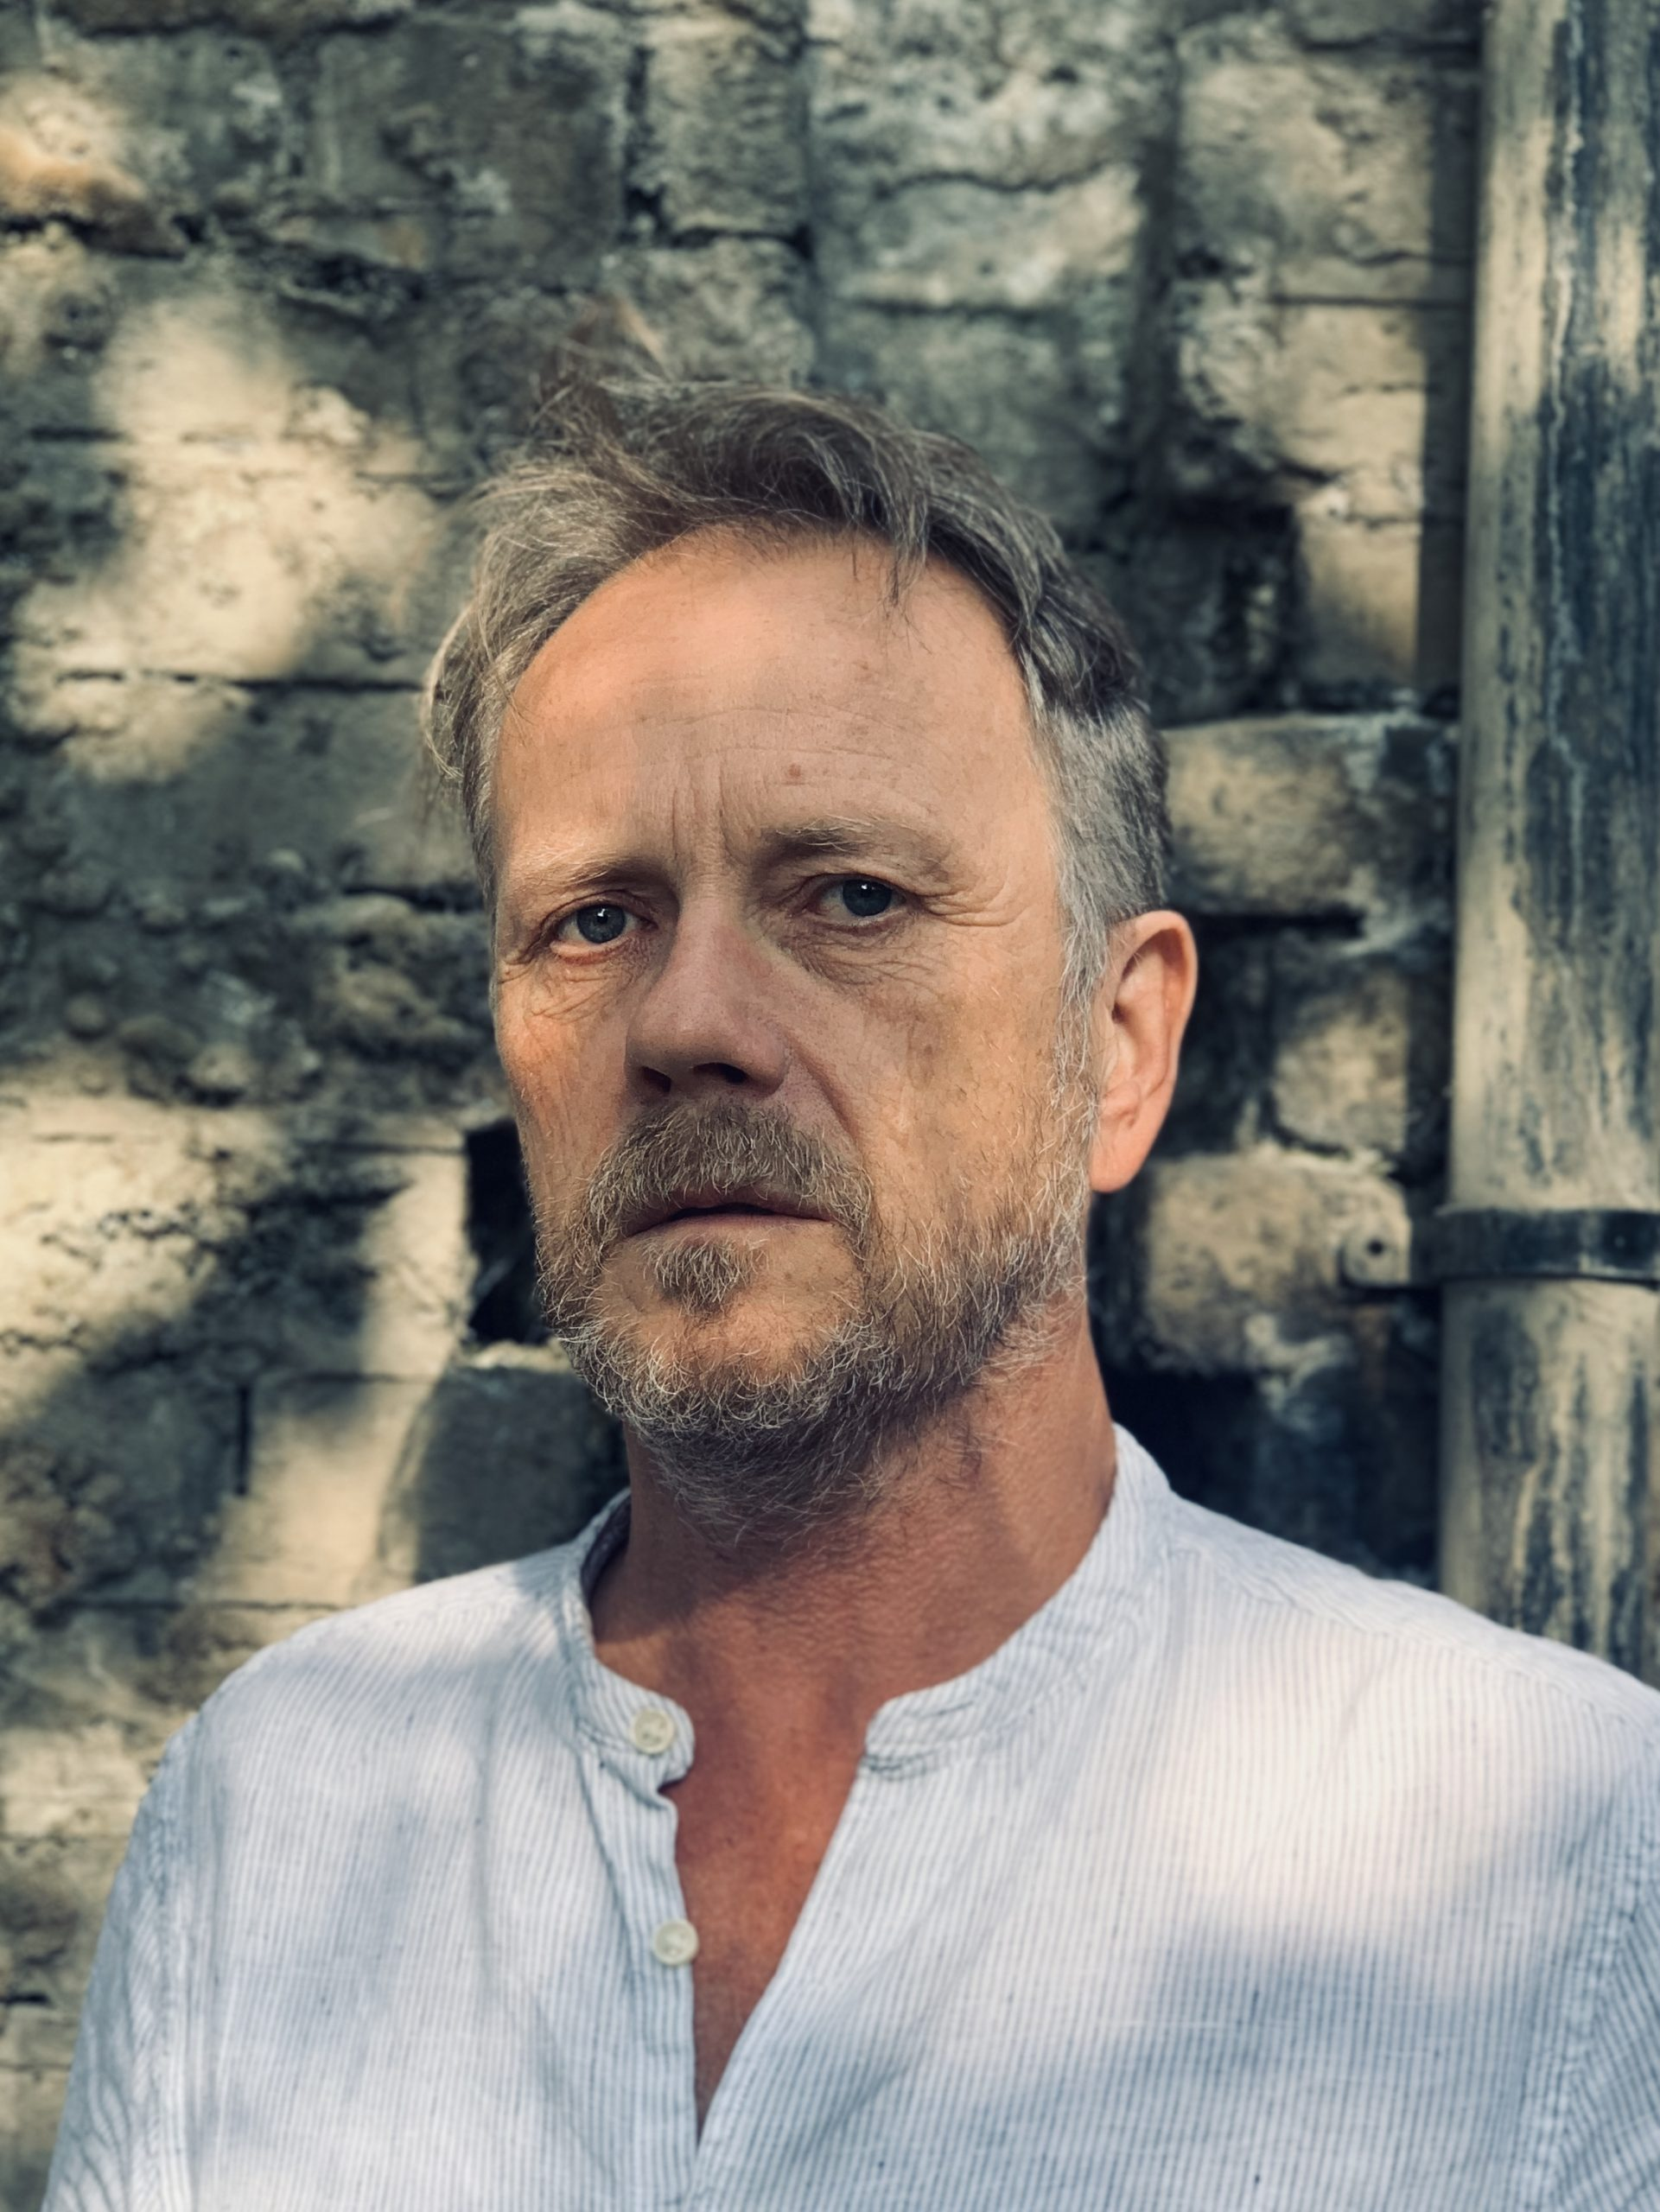 Standing against a grey brick wall in dappled light, artist Paul Clifford looks seriously into the camera, wearing a white shirt